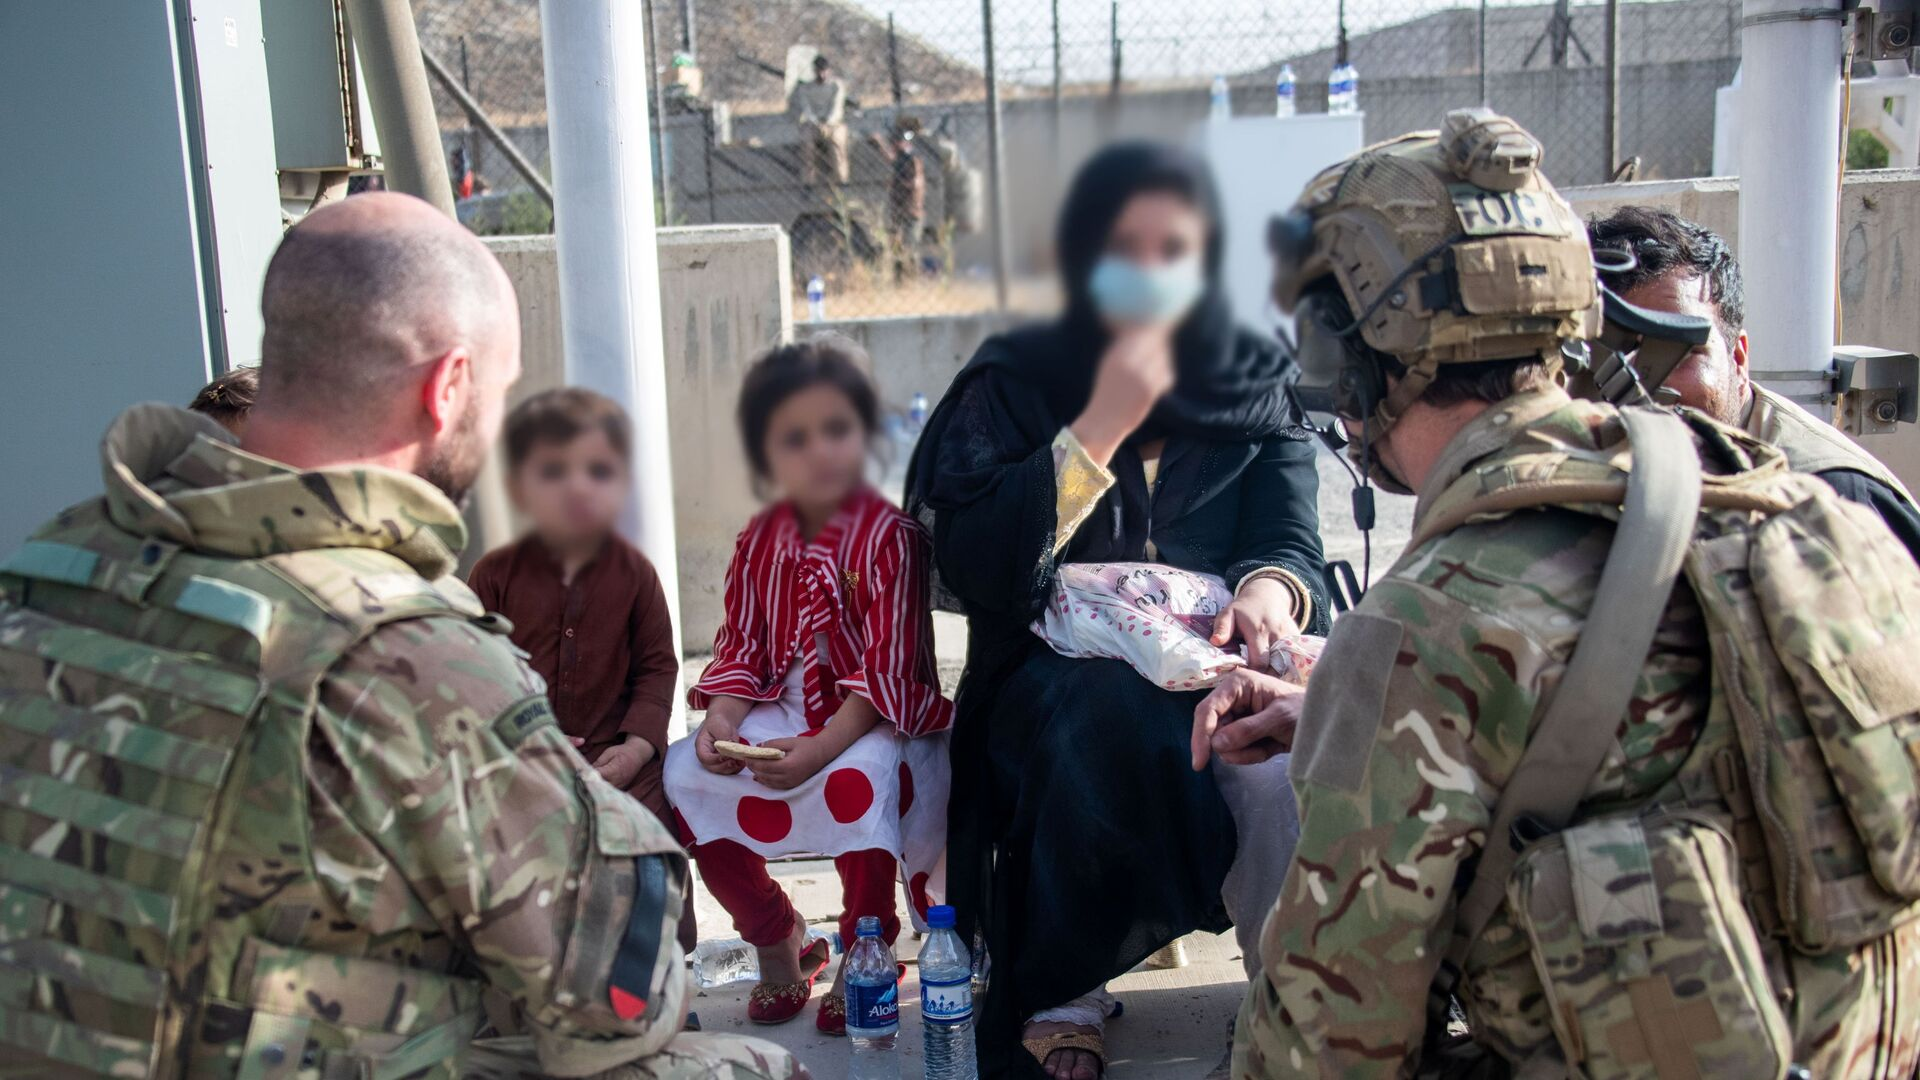 Members of the UK Armed Forces who continue to take part in the evacuation of entitled personnel from Kabul airport, in Kabul, Afghanistan August 19-22, 2021 - Sputnik International, 1920, 23.09.2021